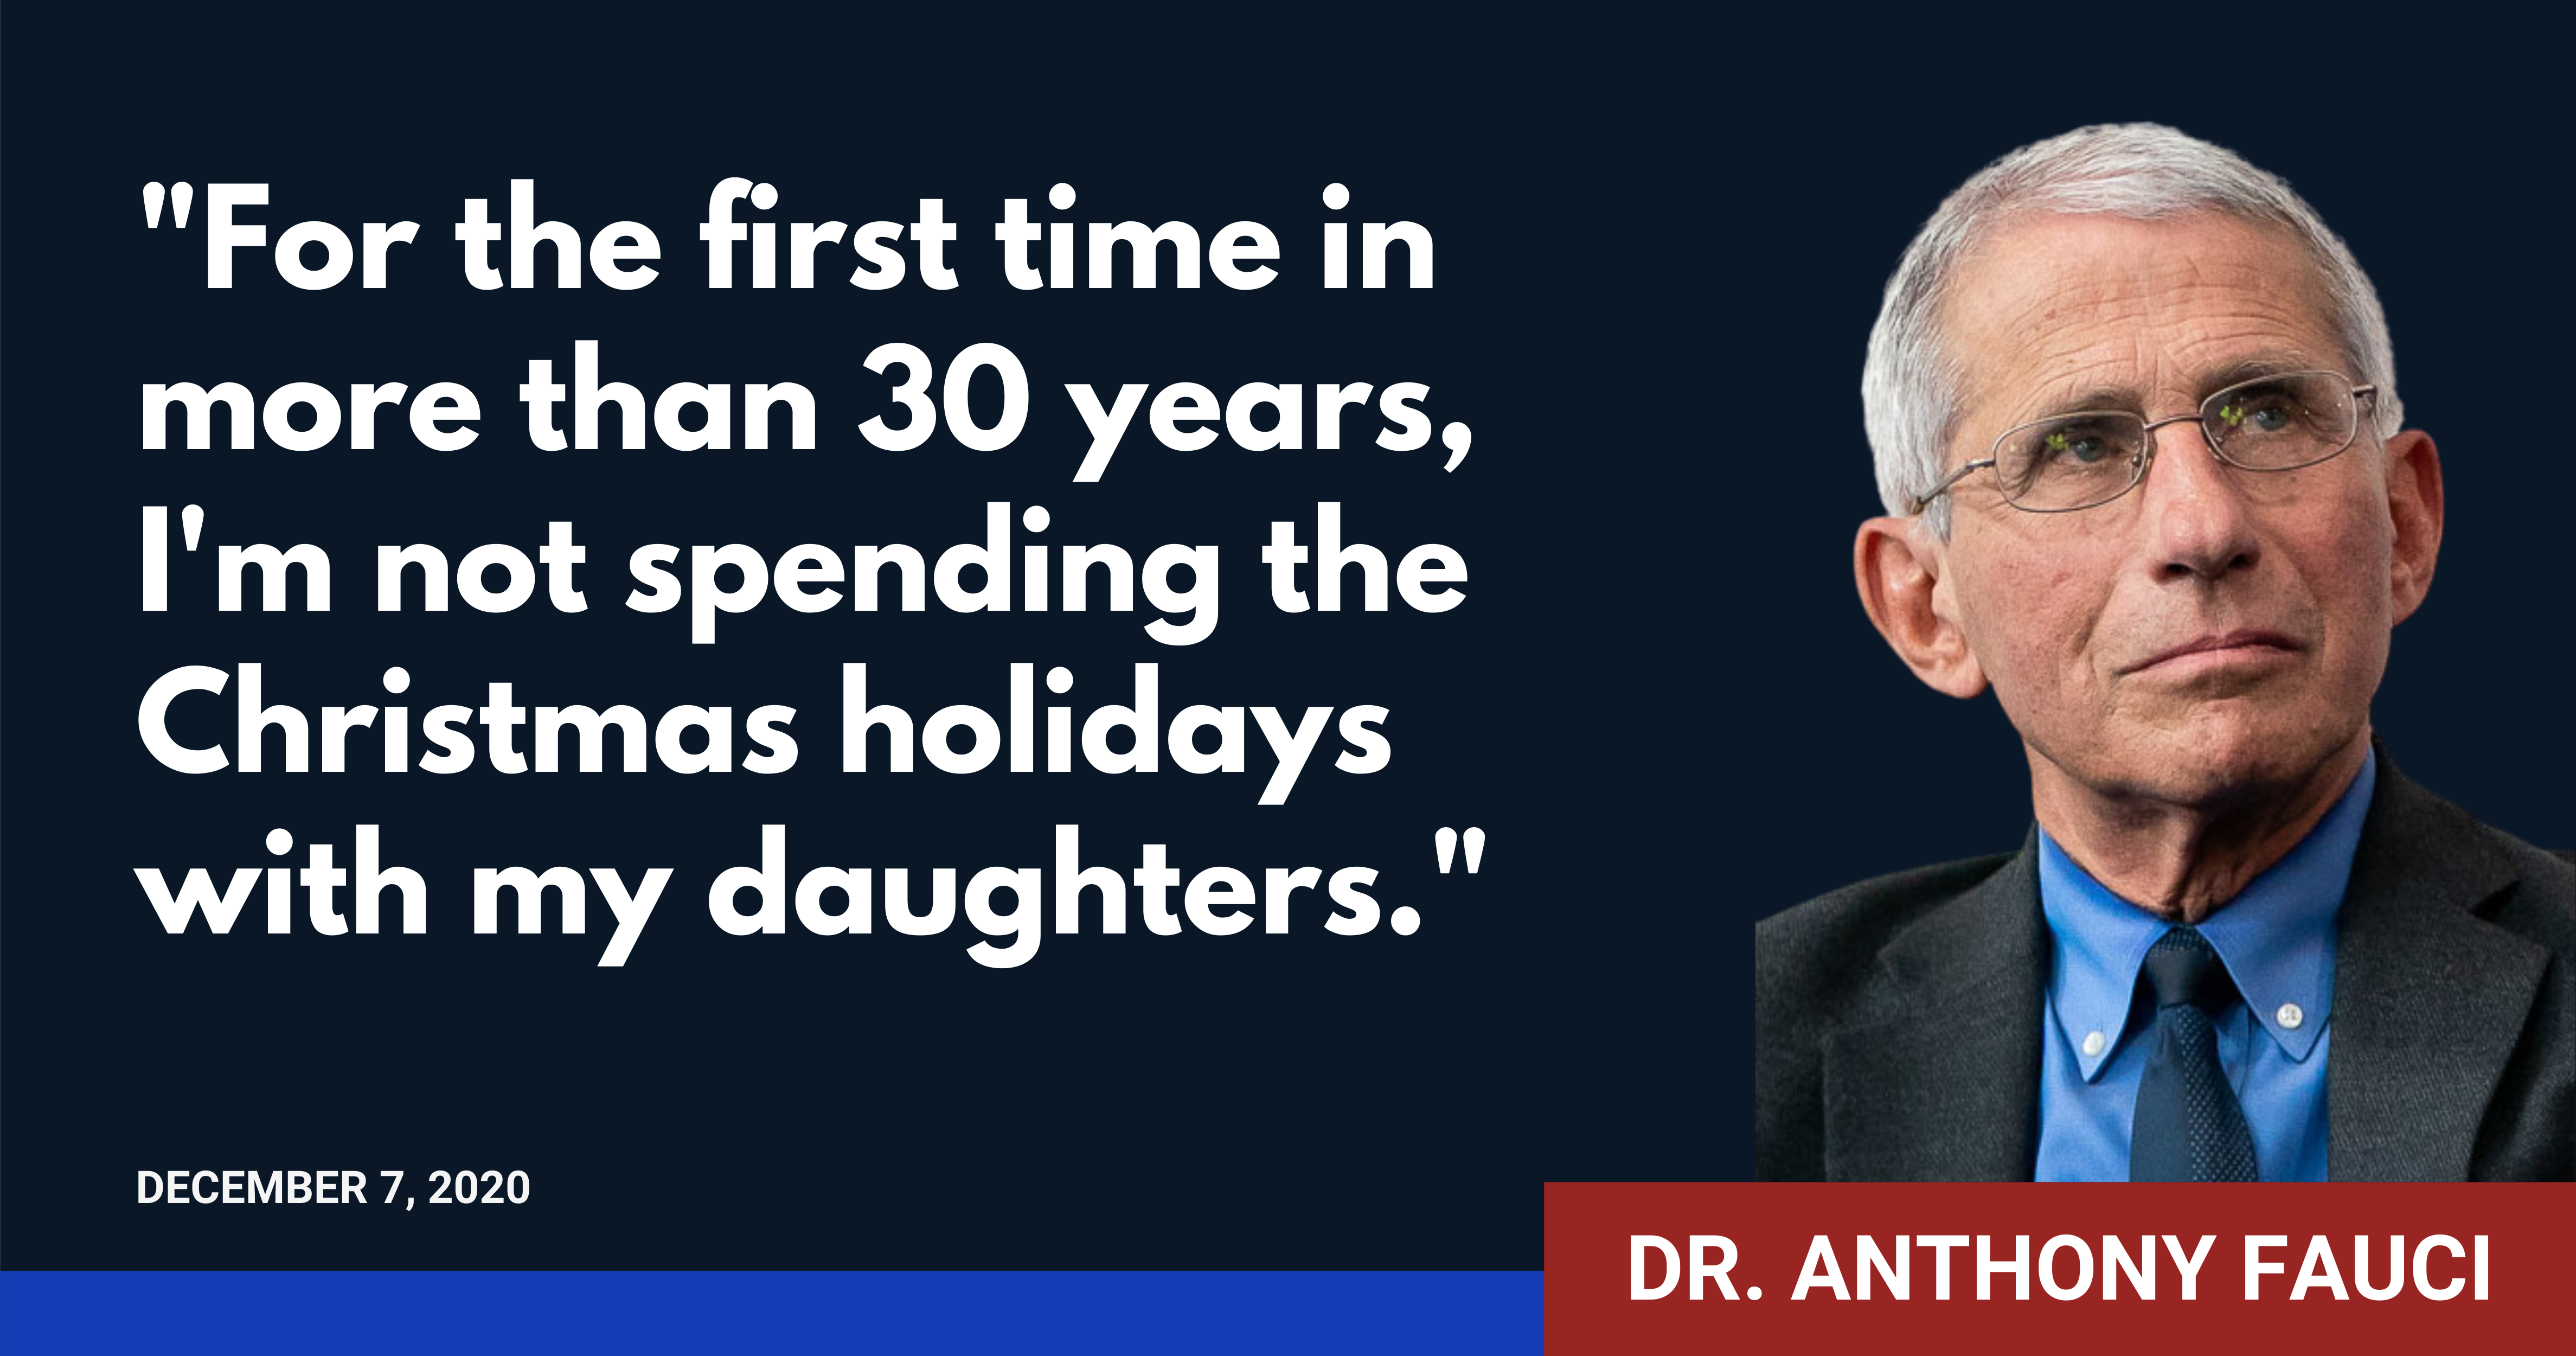 Dr. Anthony Fauci has changed his holiday plans due to COVID-19.